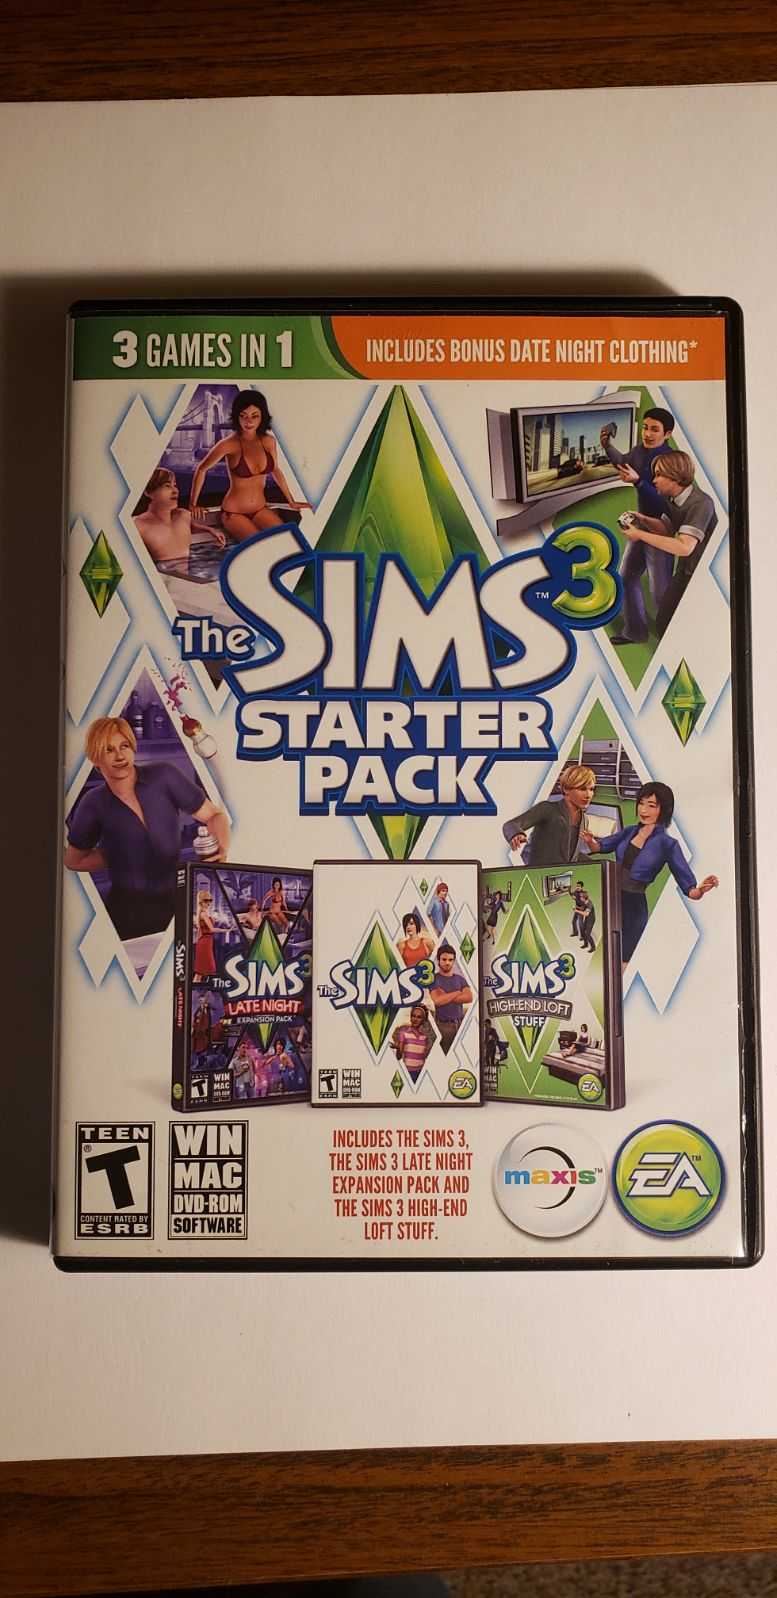 The Sims 3 Starter Pack for PC/Mac